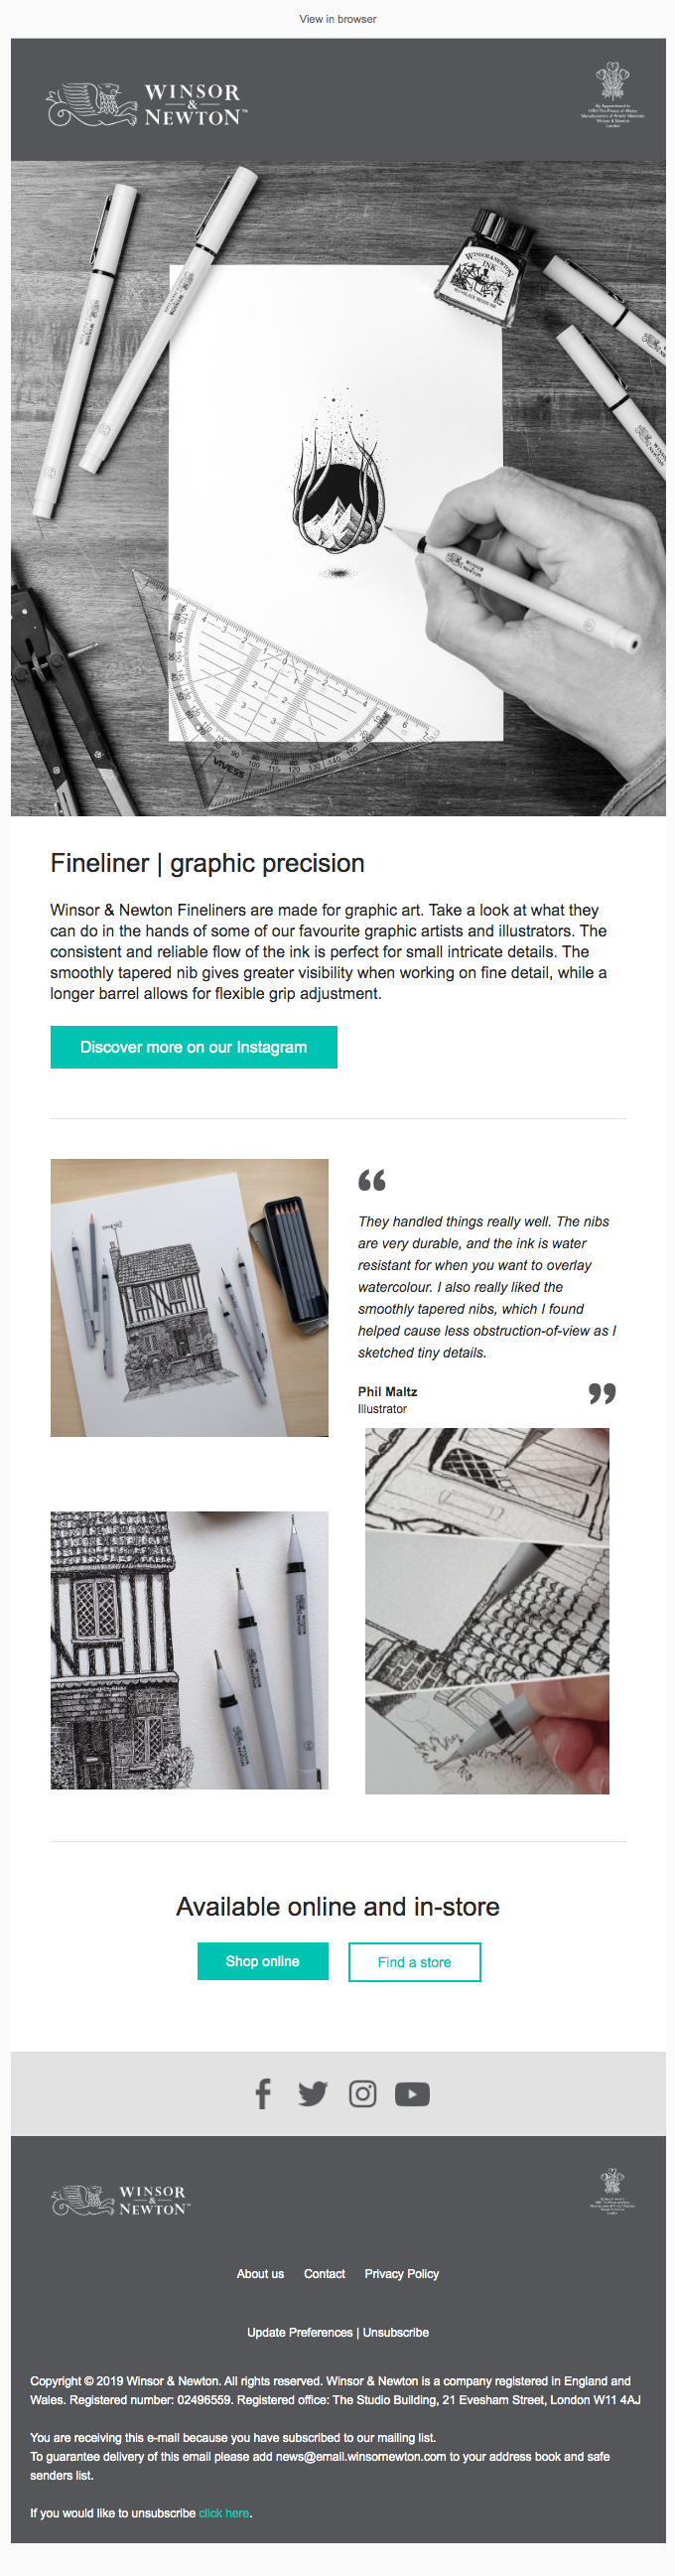 Discover what these illustrators have created with our Fineliners